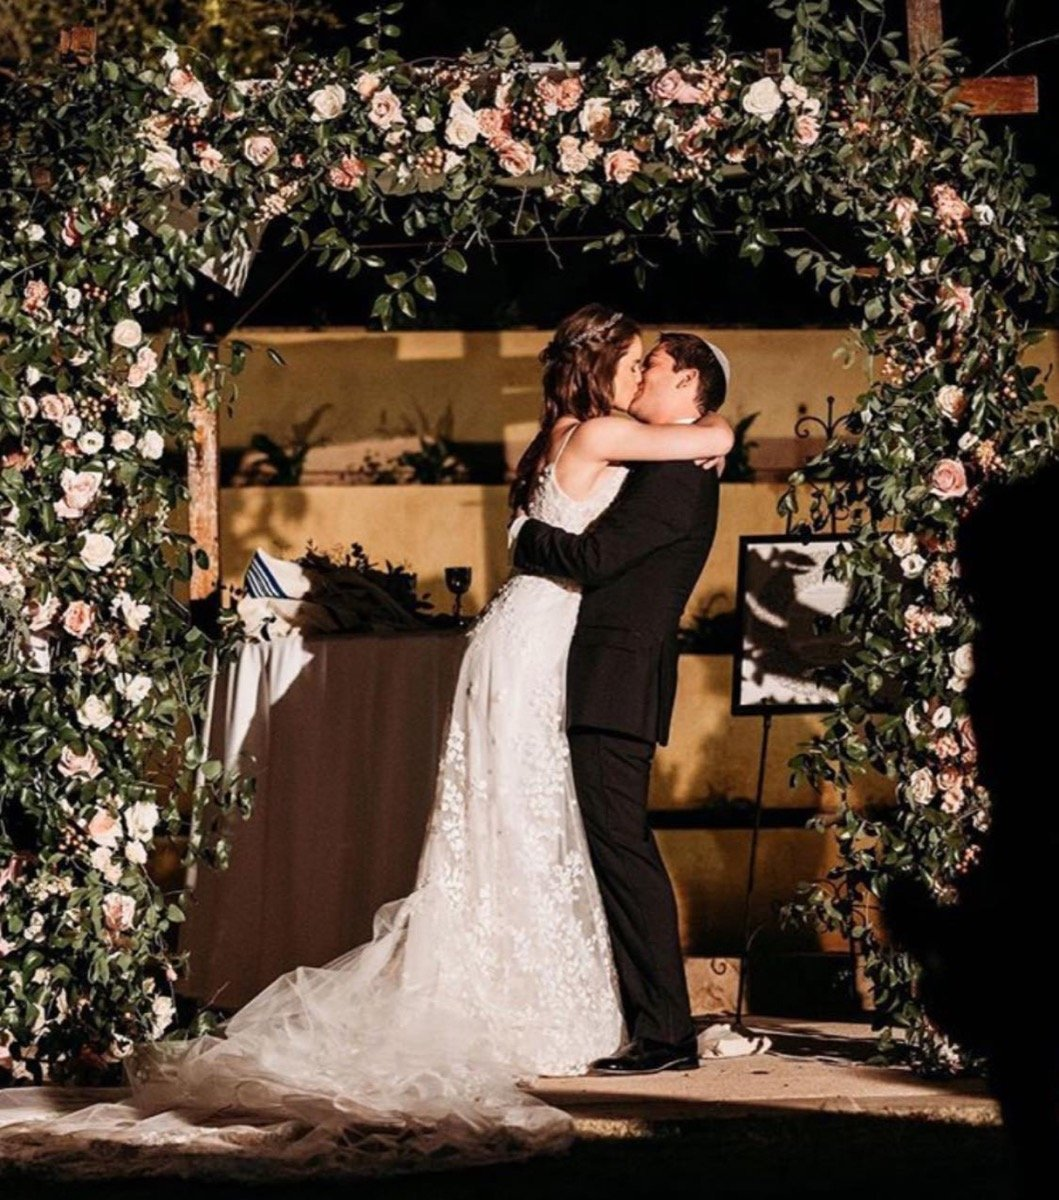 A groom and Bride kiss during their ceremony as husband and wife. They are framed by a Freesia Designs designed alter.